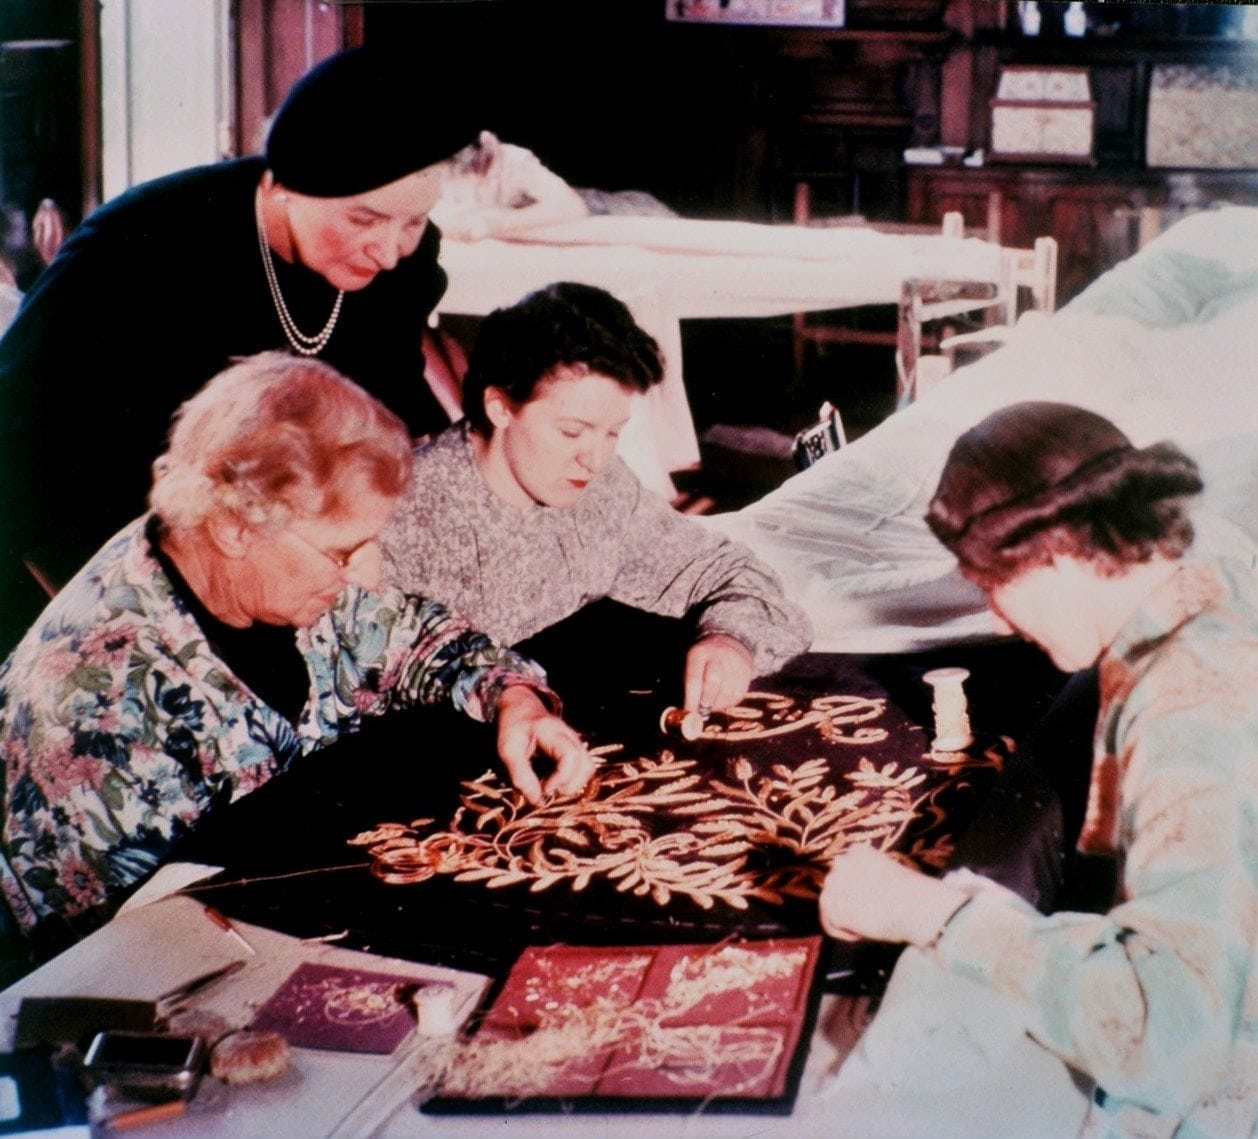 RSN embroidering the Robe of Estate for Her Majesty The Queen's Coronation in 1953